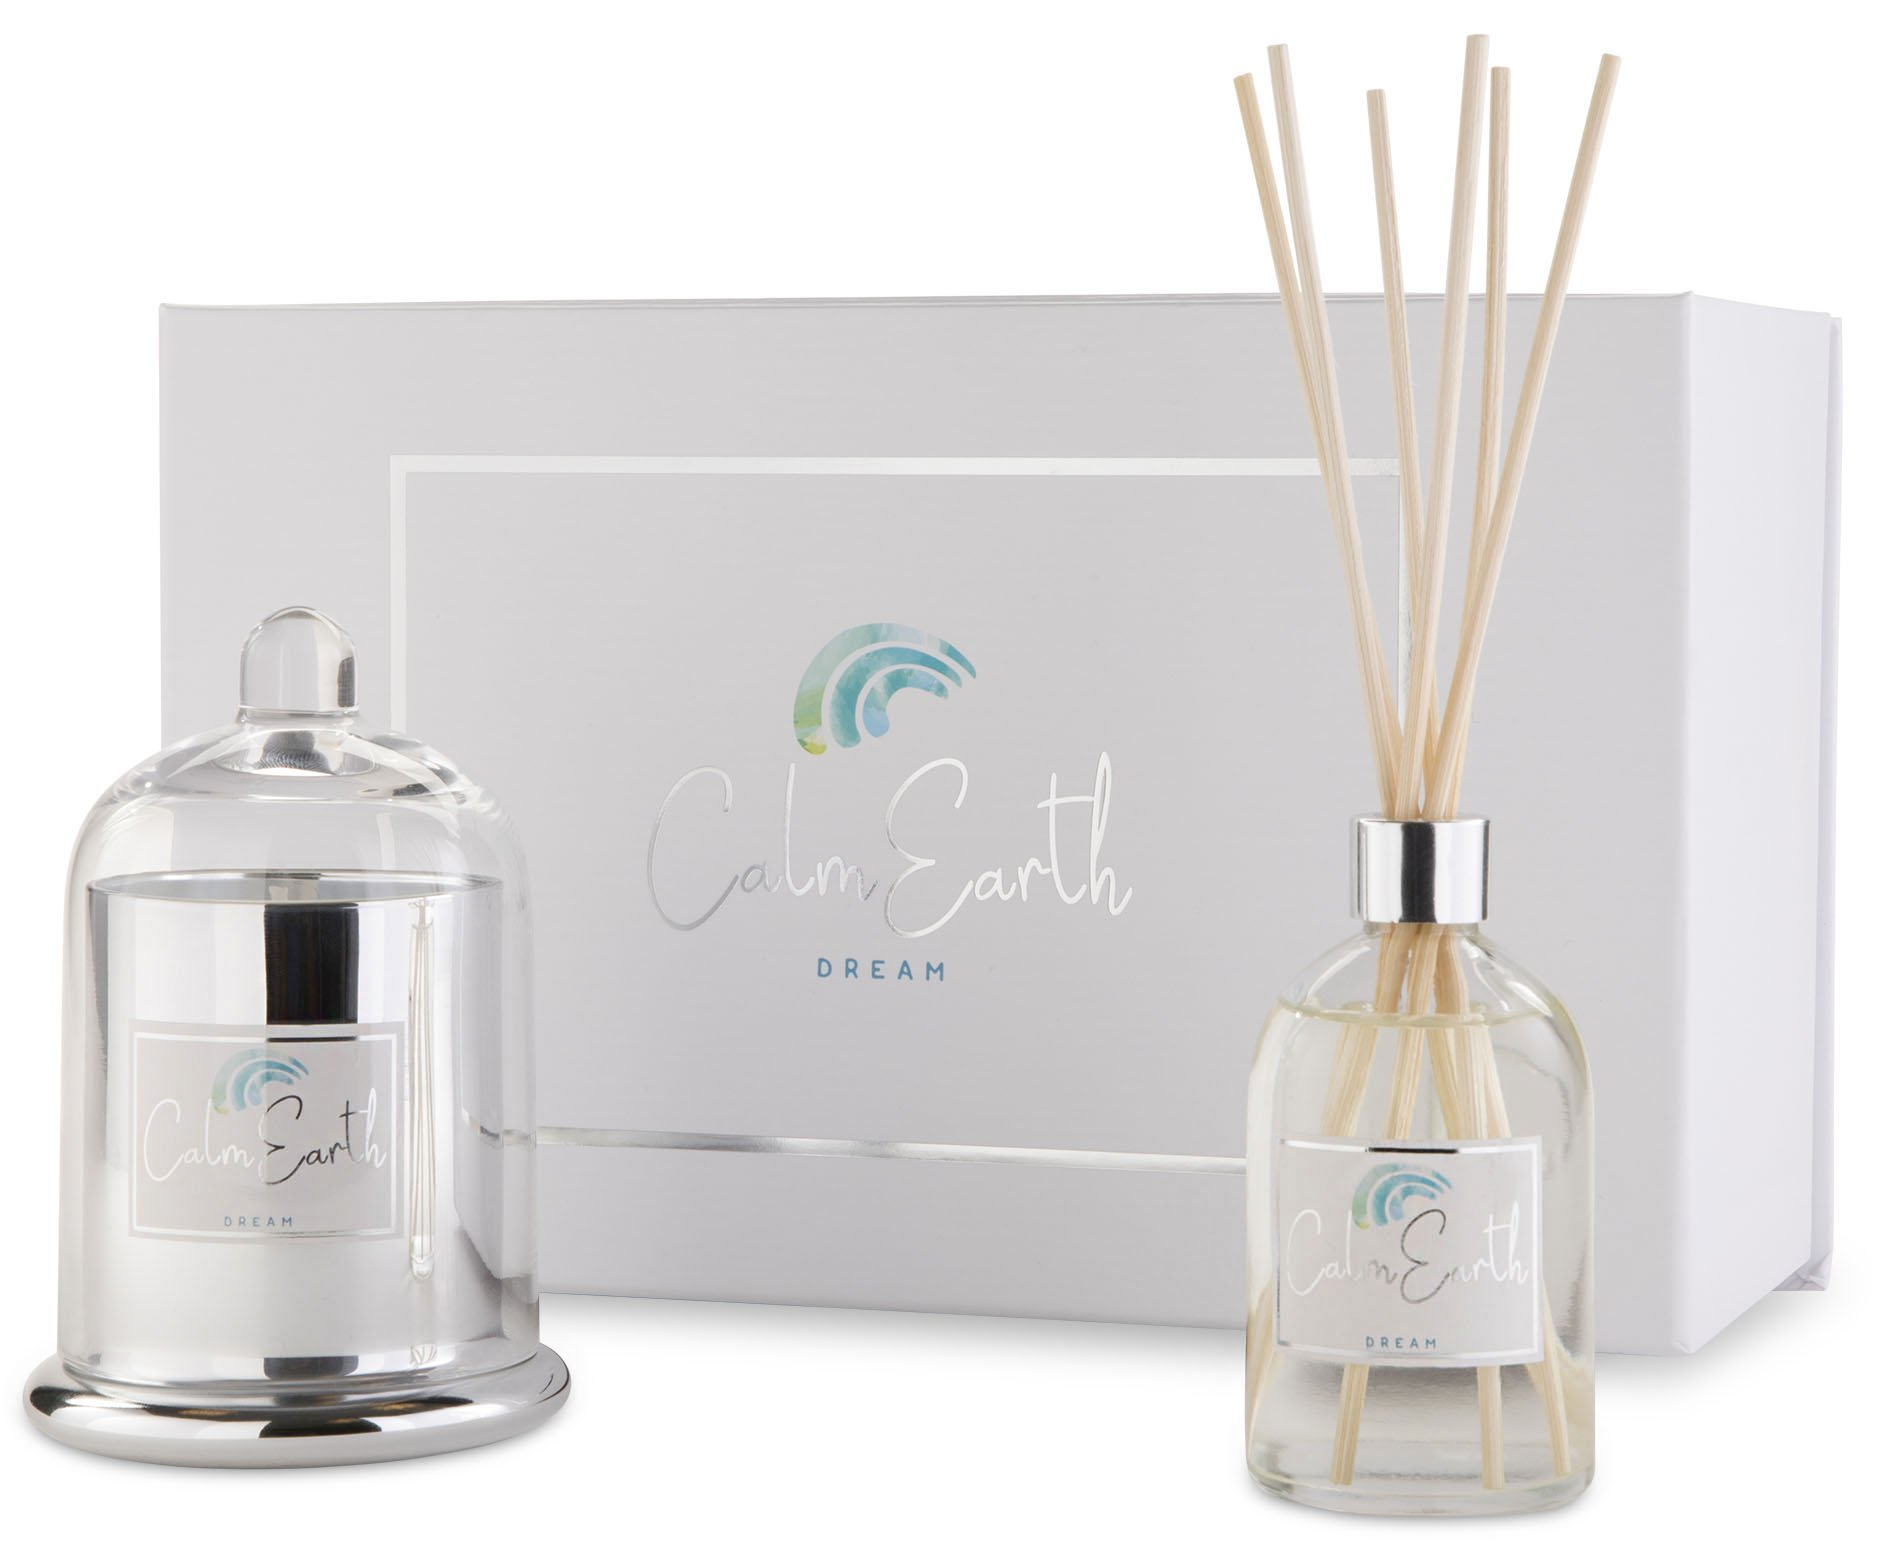 Aromatherapy Candle and Reed Diffuser Set | Scented Soy Candles and  Diffuser Oil Sets With Hints of Vanilla and Sandalwood | Natural Elegant Candle Set Dream by Calm Earth